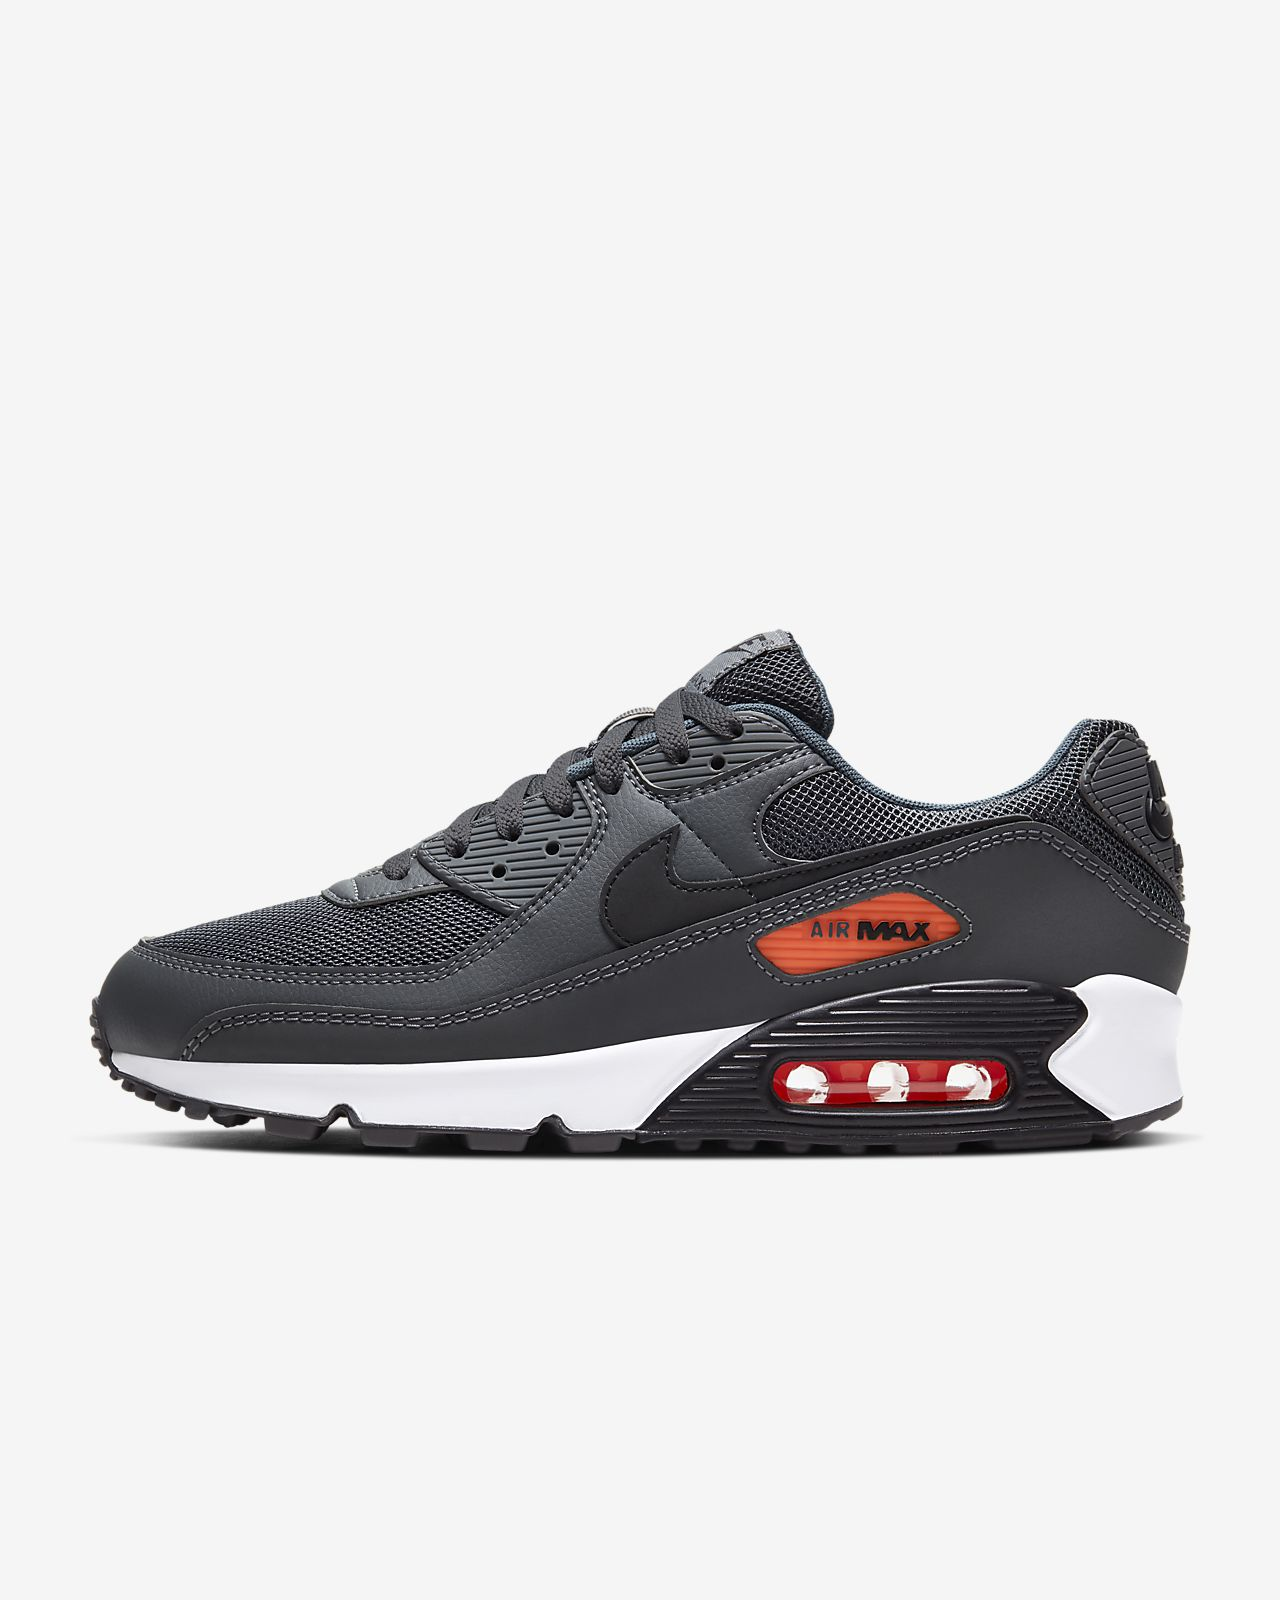 Nike Air Max | Alicepoint